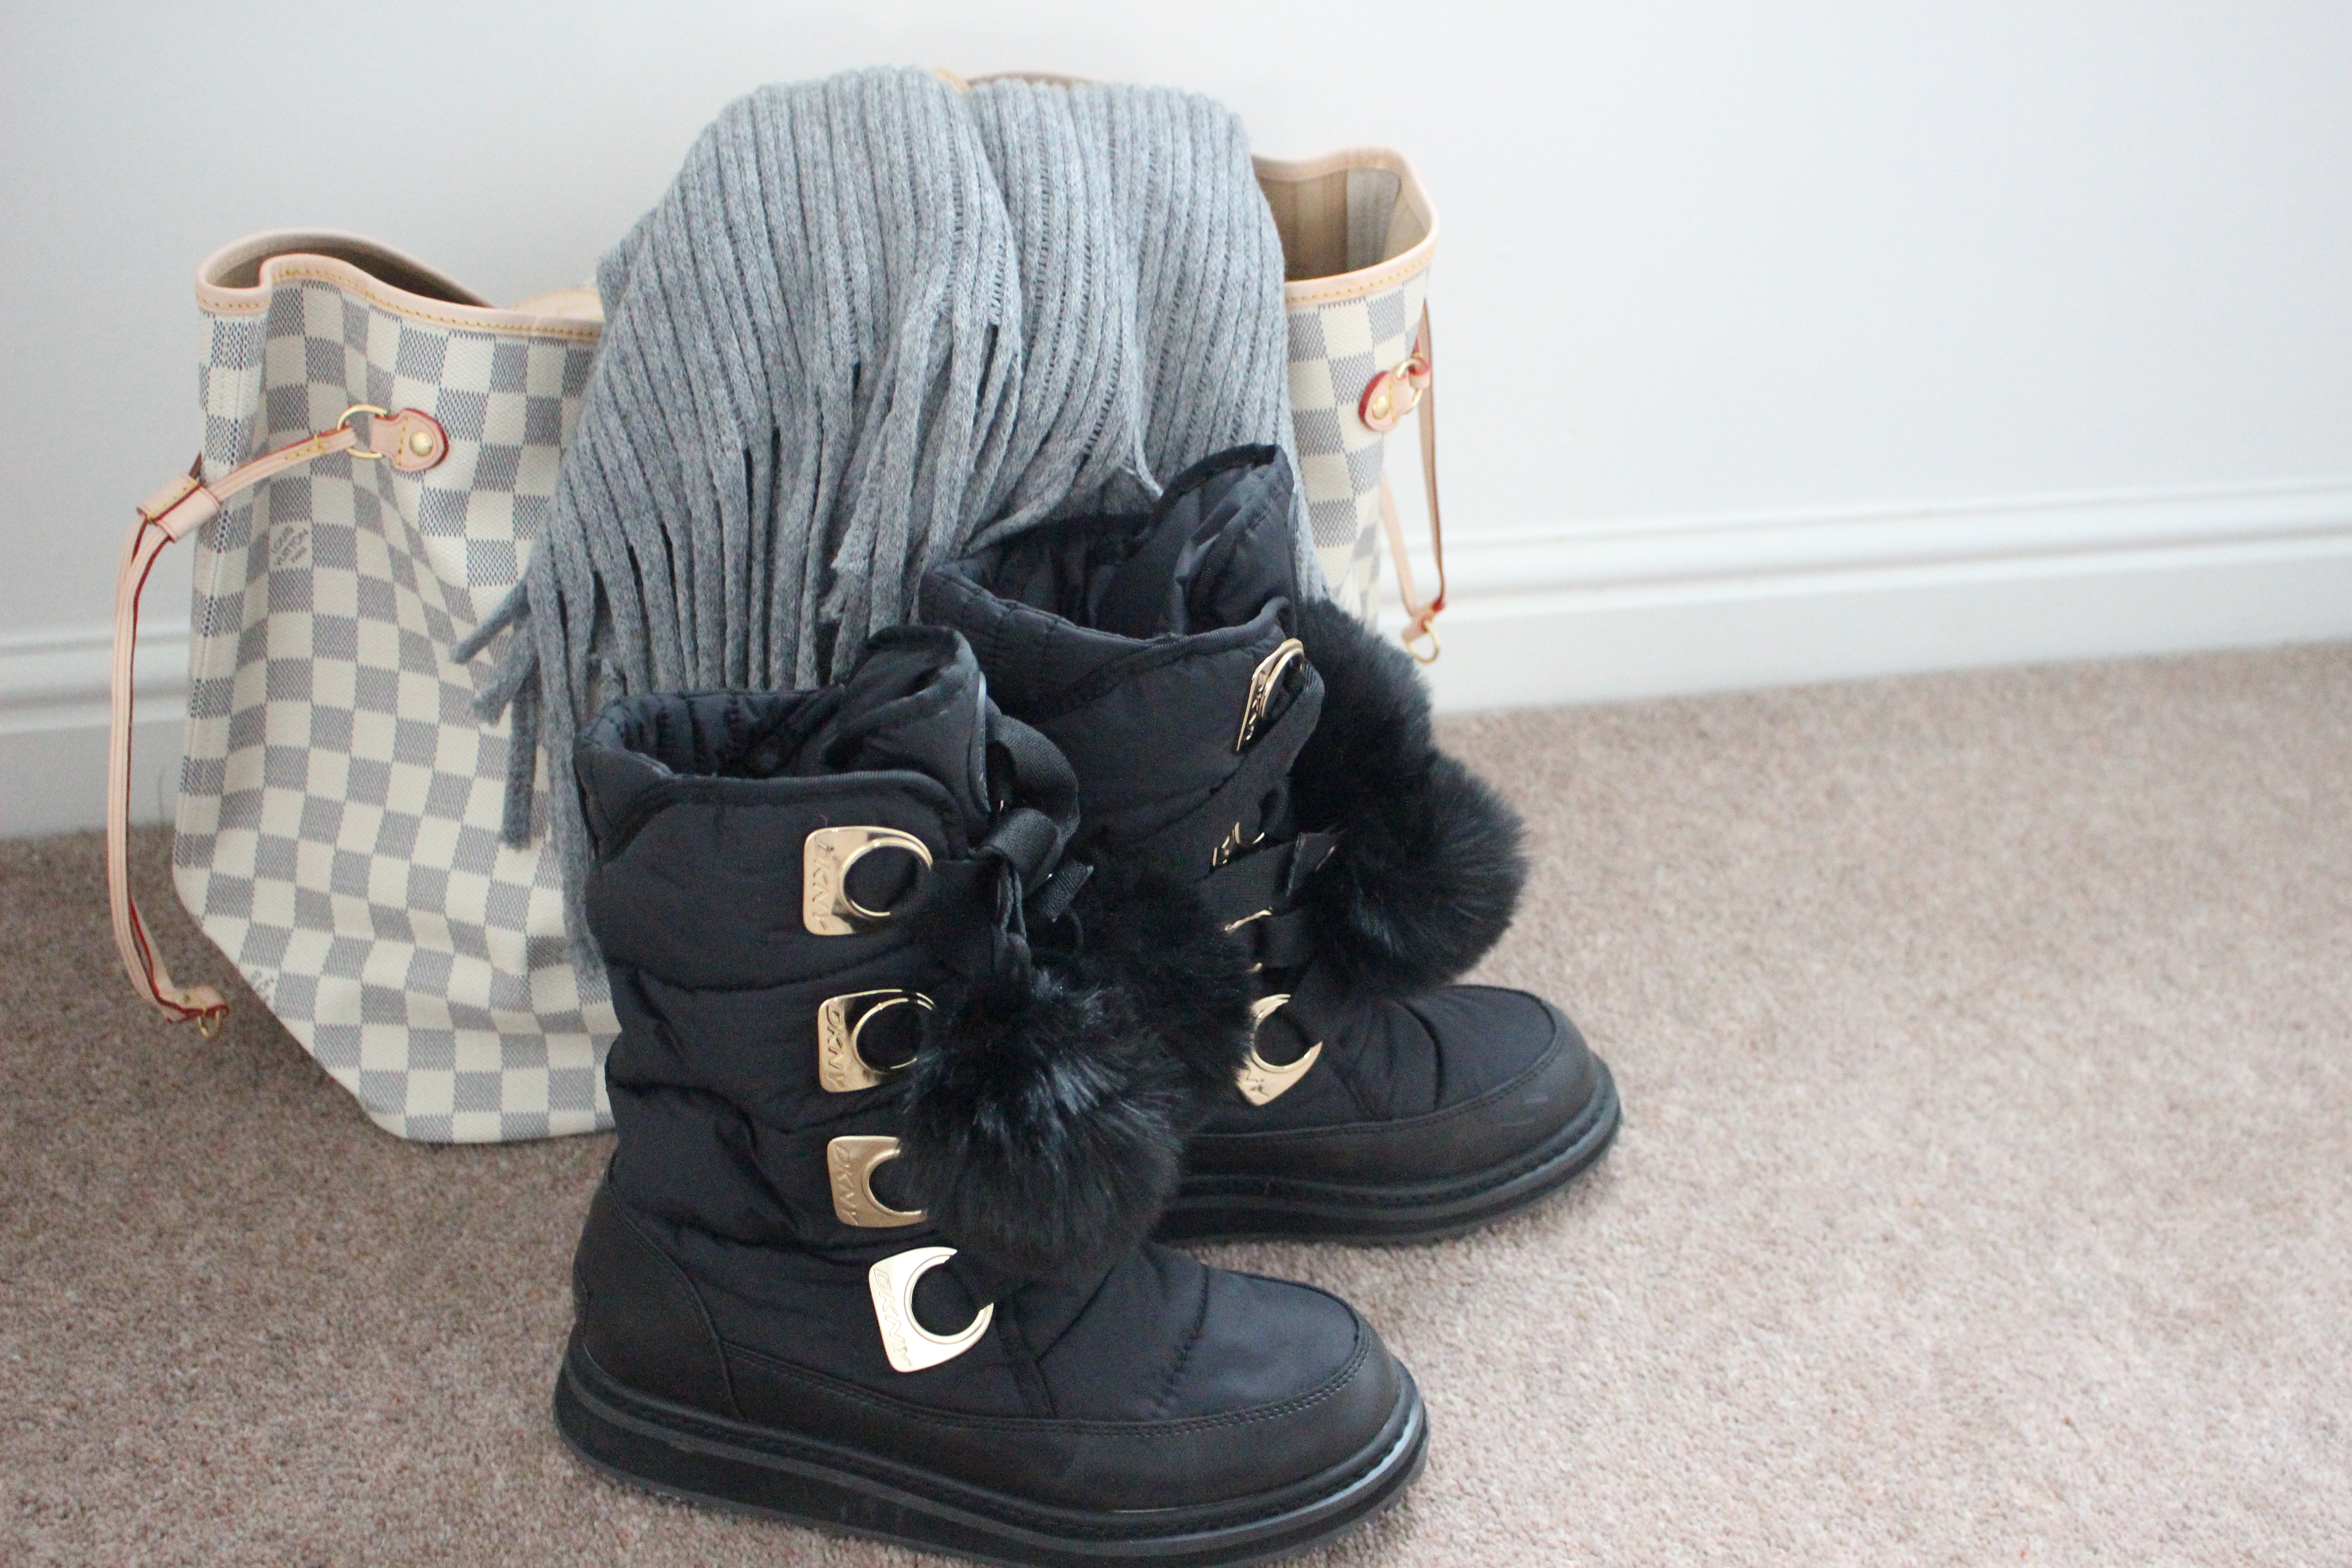 Cloggs Footwear Store Opening and the DKNY Snow Boots - Remie's ...